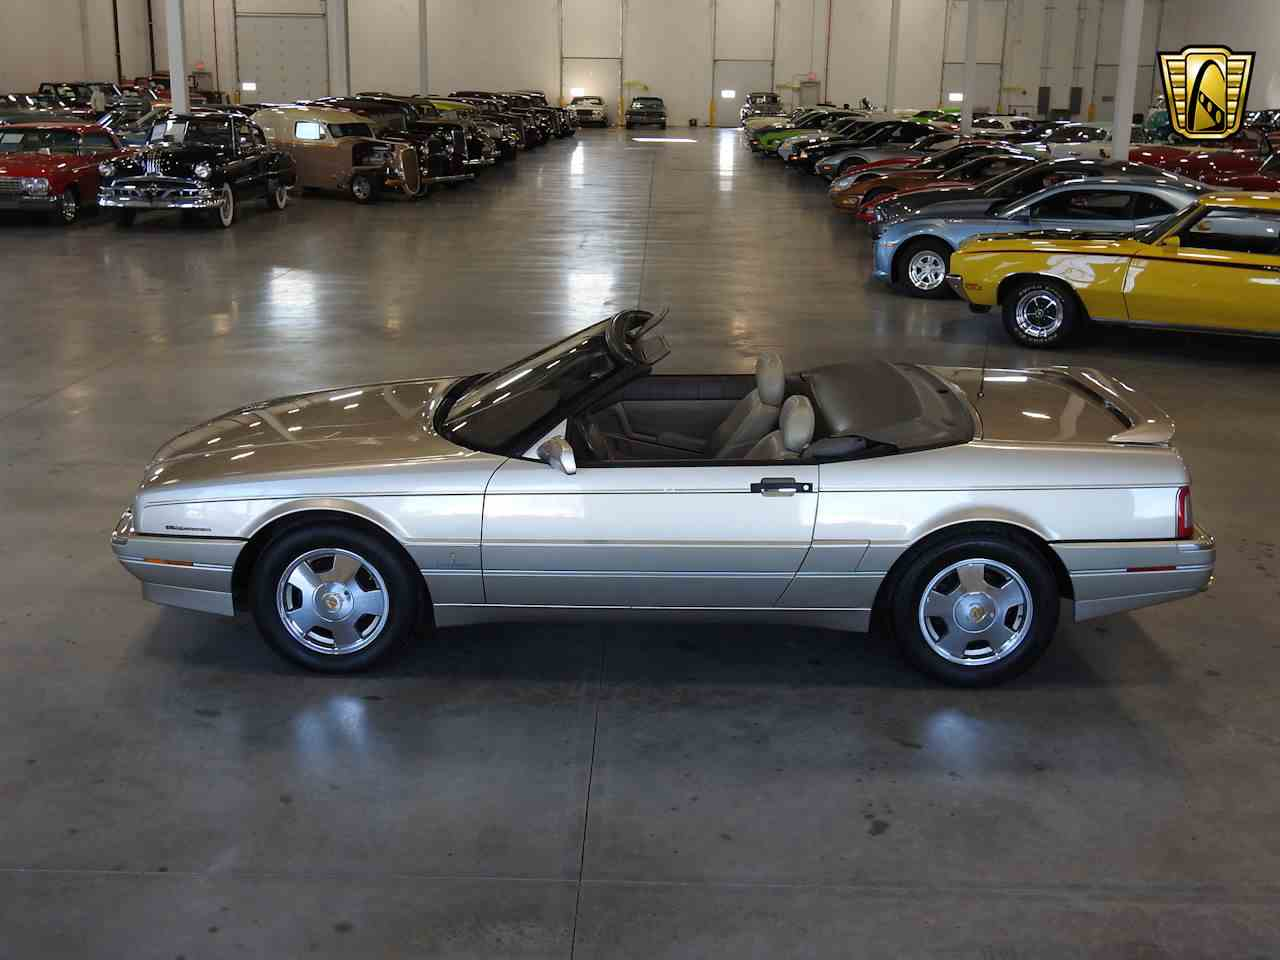 Large Picture of '93 Cadillac Allante - $8,995.00 Offered by Gateway Classic Cars - Milwaukee - MDHG